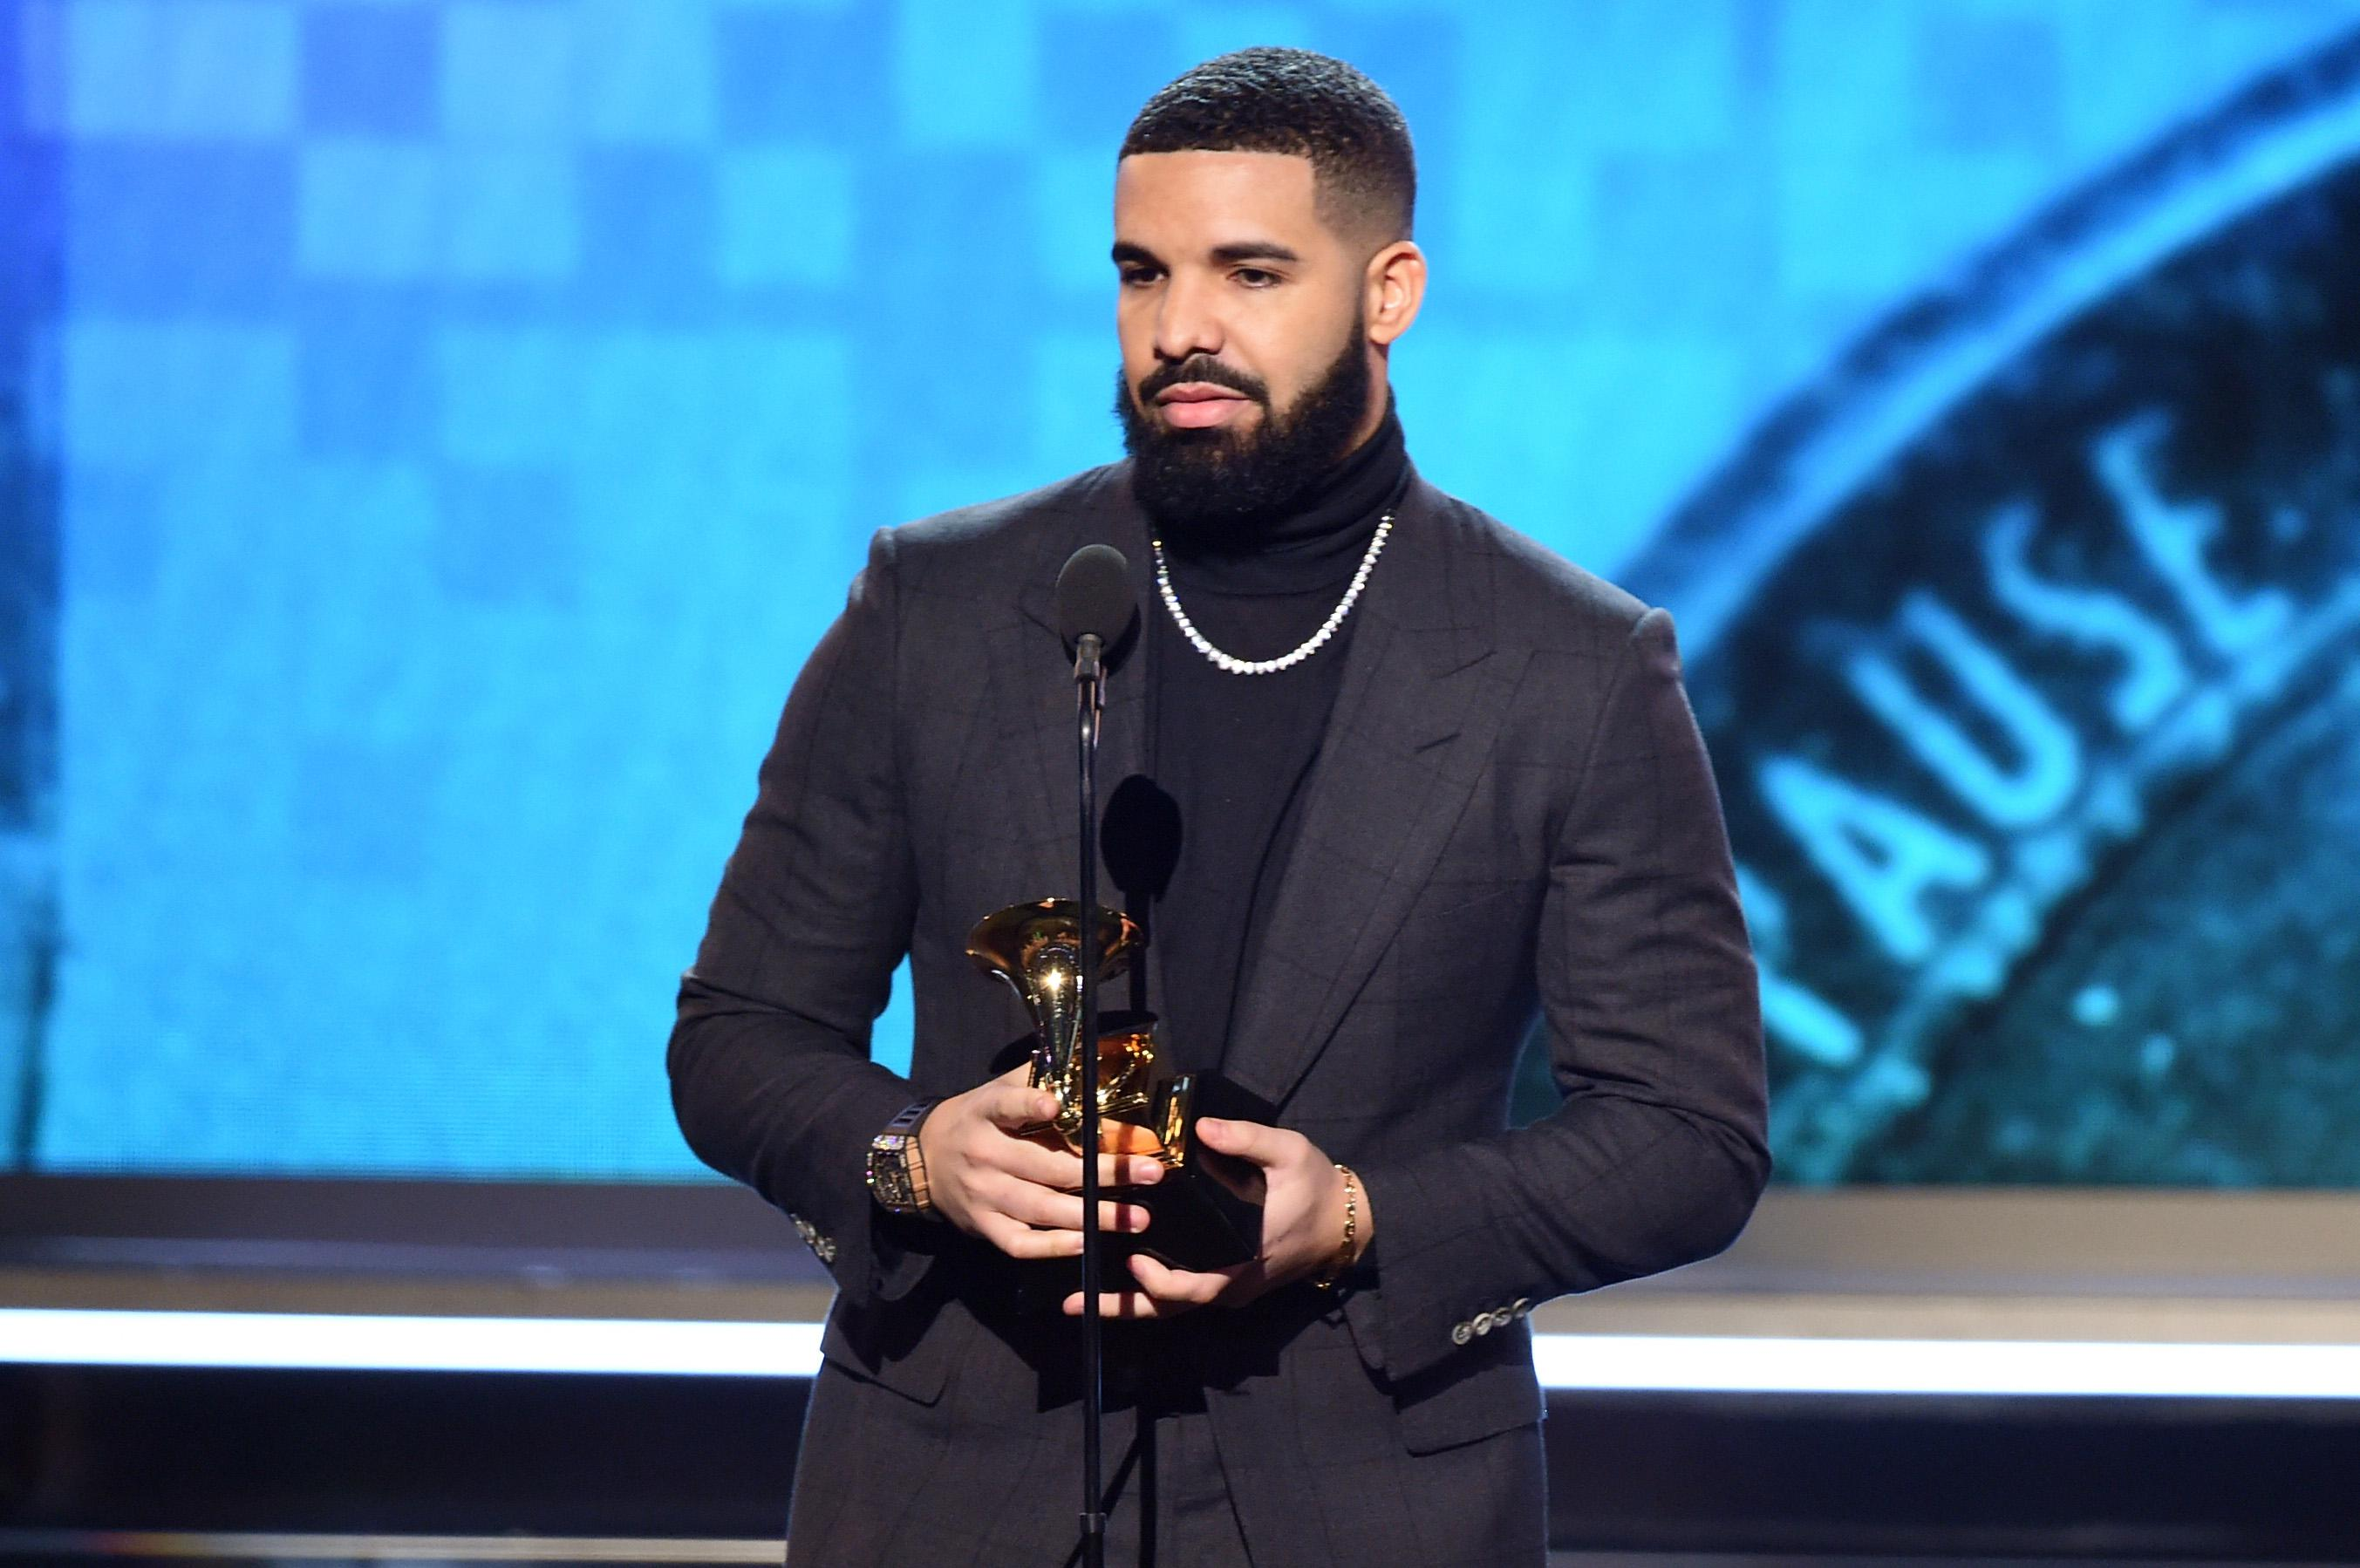 It was a surprise that Drake even showed up. The Grammys may wish he hadn't.